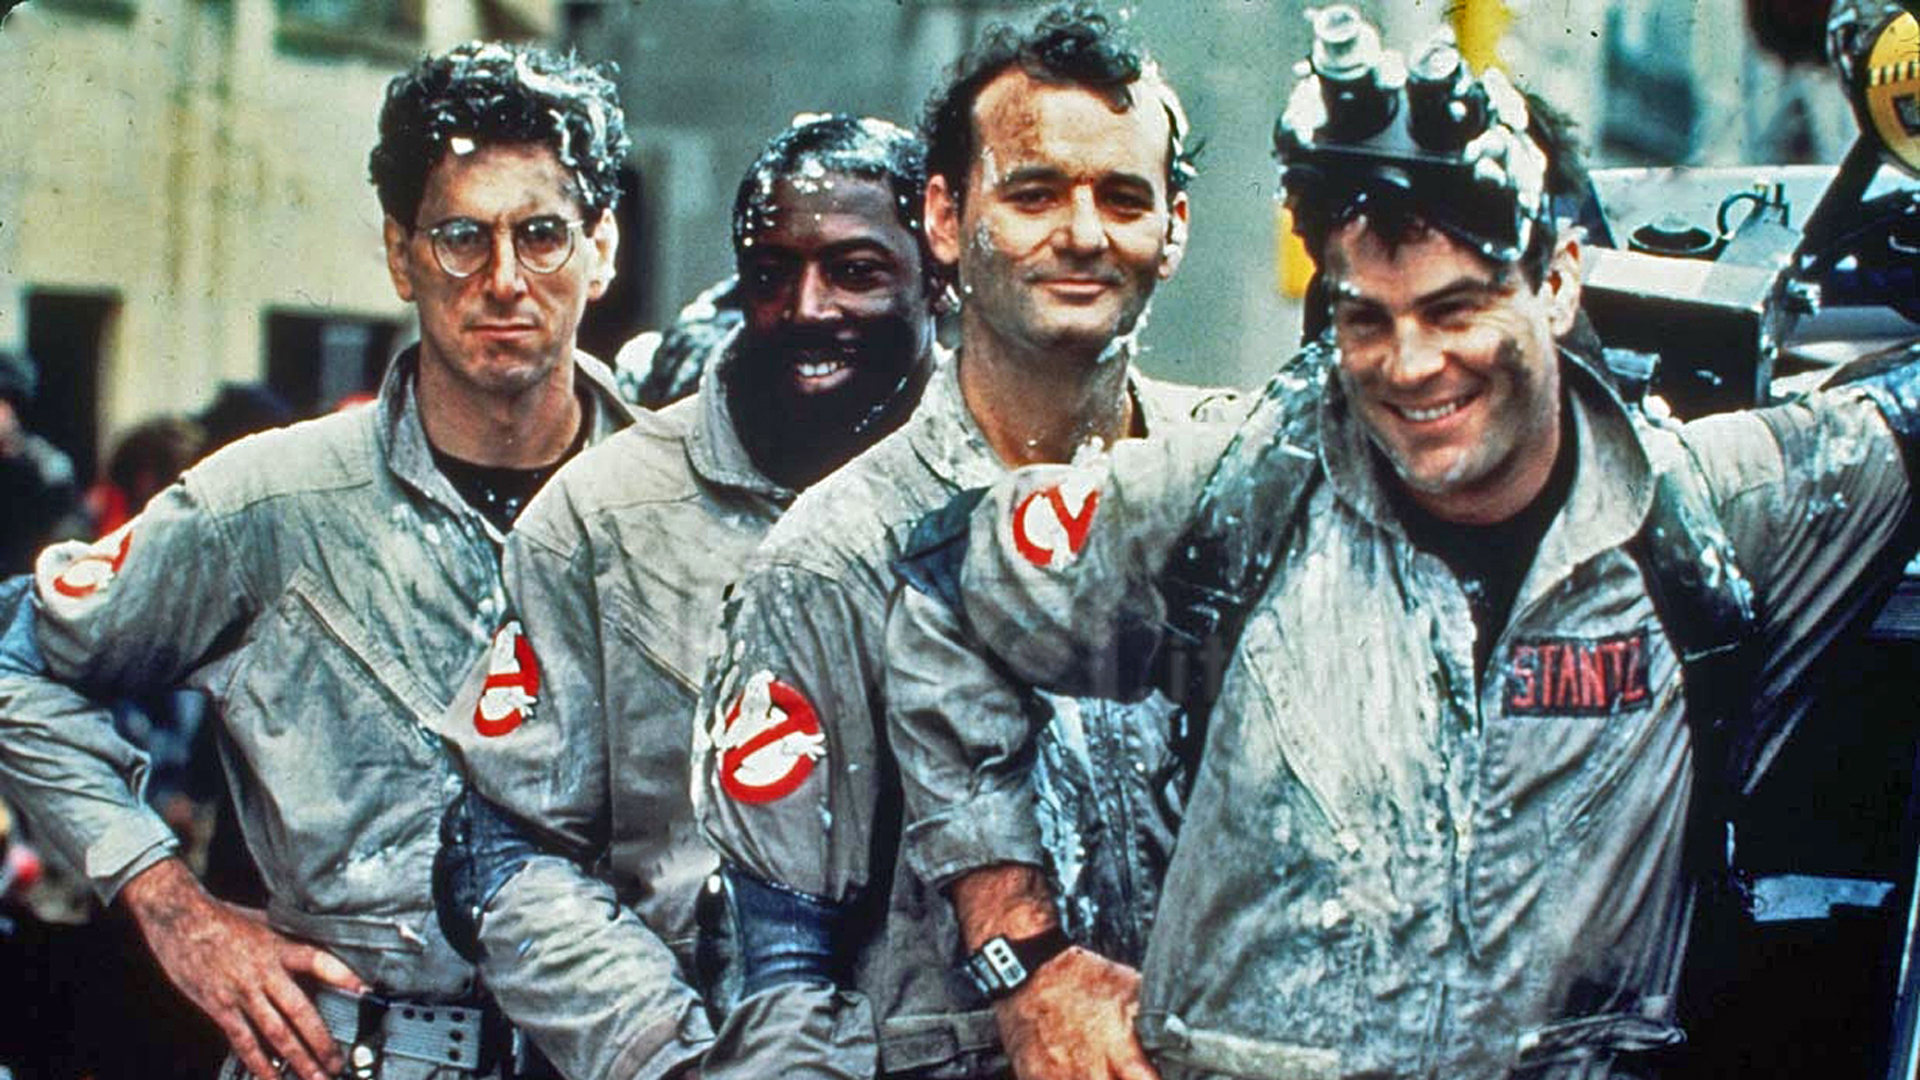 GHOSTBUSTERS  is one of the greatest comedies of all time, focusing on a team of blue collar heroes, starting their own business, attempting to save the city.The four lead actors have fantastic chemistry together, playing off one anothers strengths and weaknesses,making every performance that much stronger.While the characters occasionally bicker/disagree,there is a great sense of warmth and affection among them. Each team member has a distinct characteristic at their core - Brains ( Egon ), Mouth ( Peter ), Heart ( Ray ), and the everyman ( Winston ) - A dynamic that has a strong influence on our very own heroes.